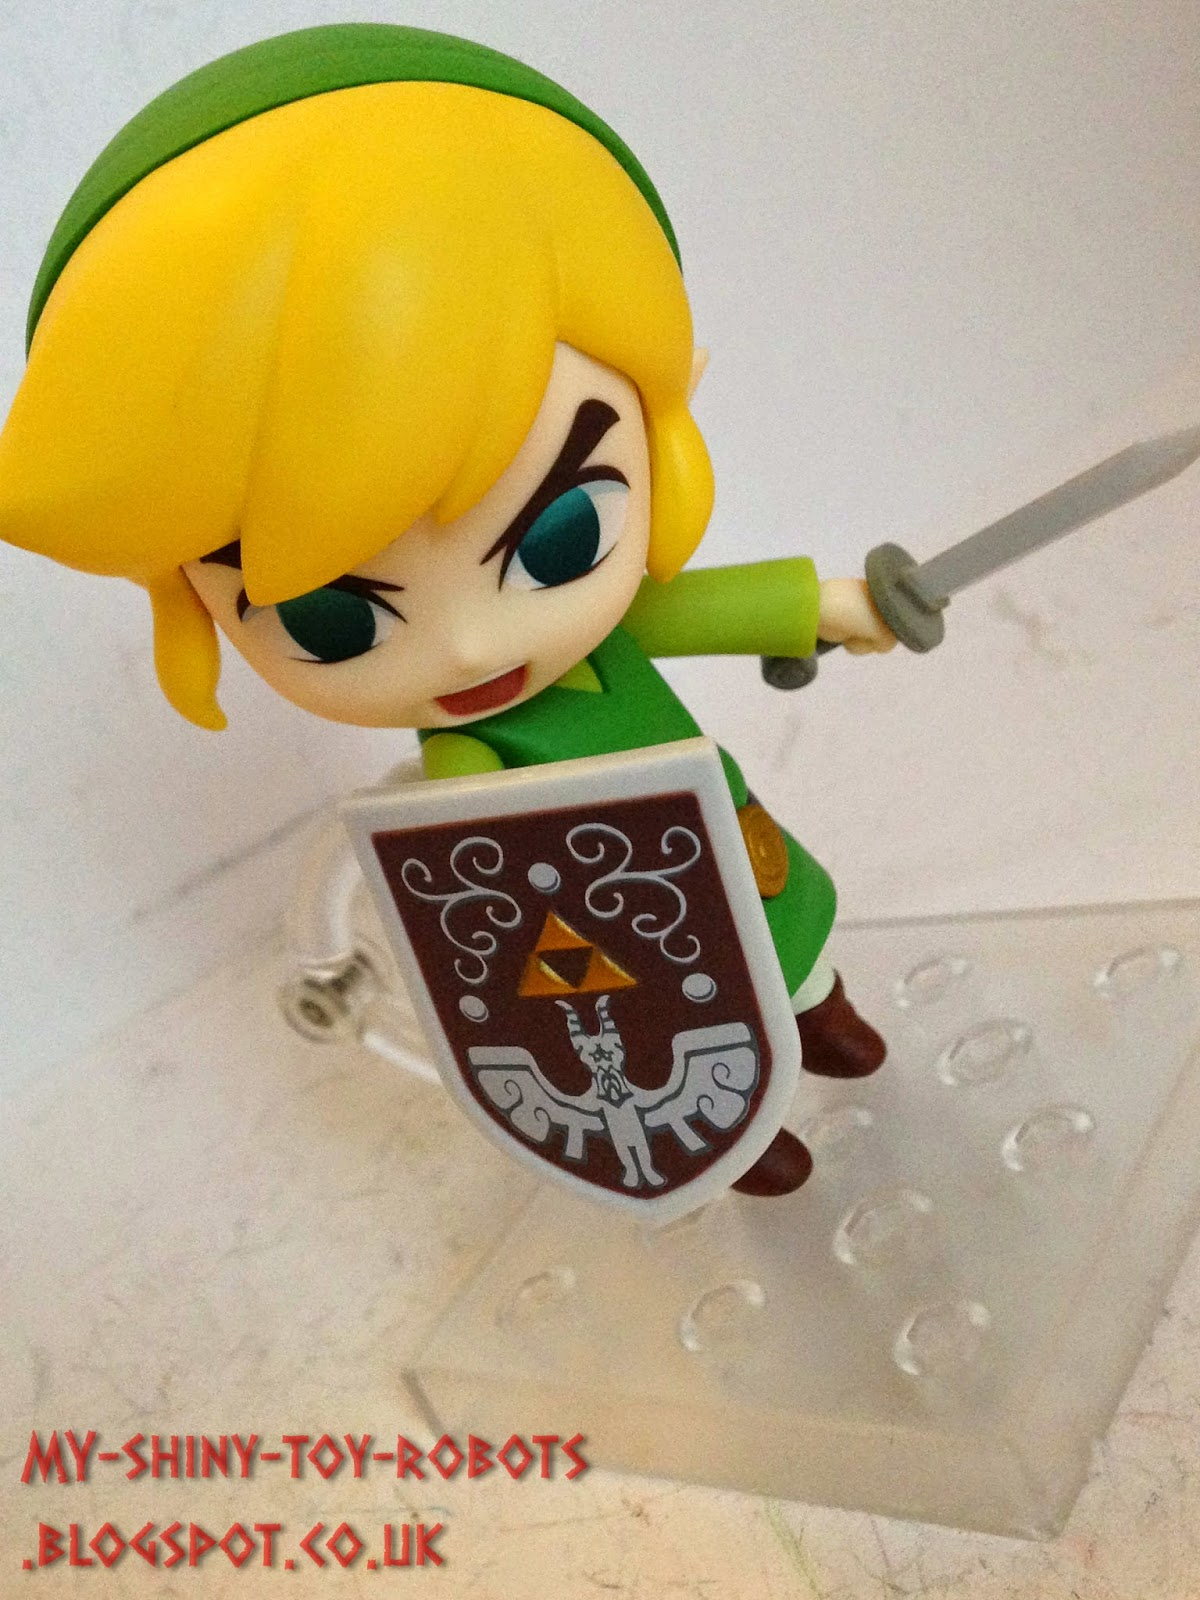 A better look at Link's shield